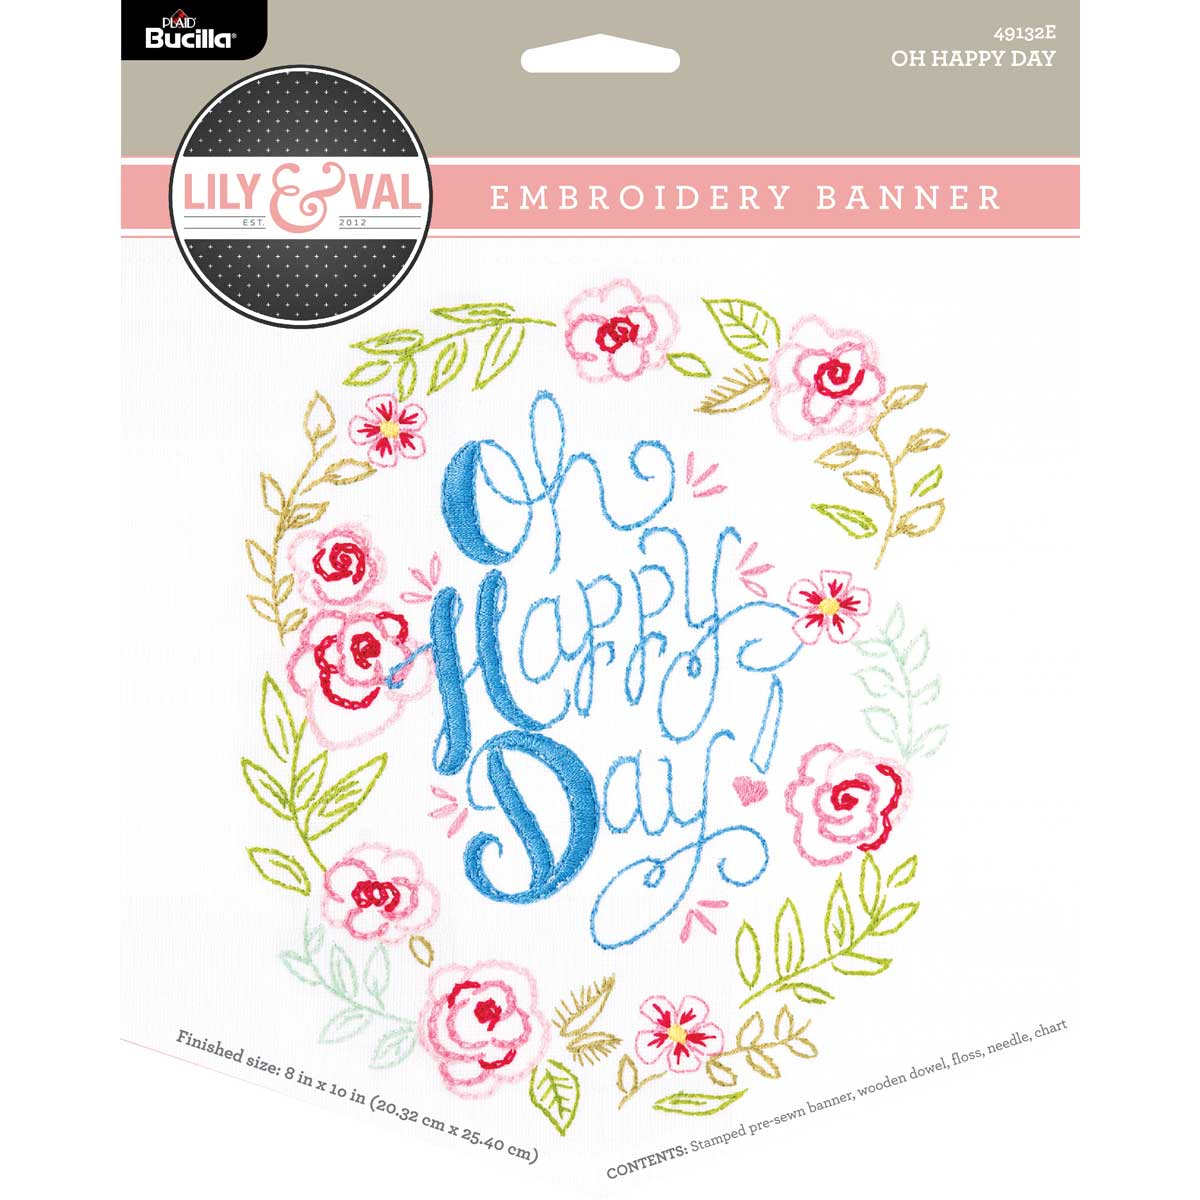 Bucilla ® Lily & Val™ Stamped Emboidery - Banners - Oh Happy Day